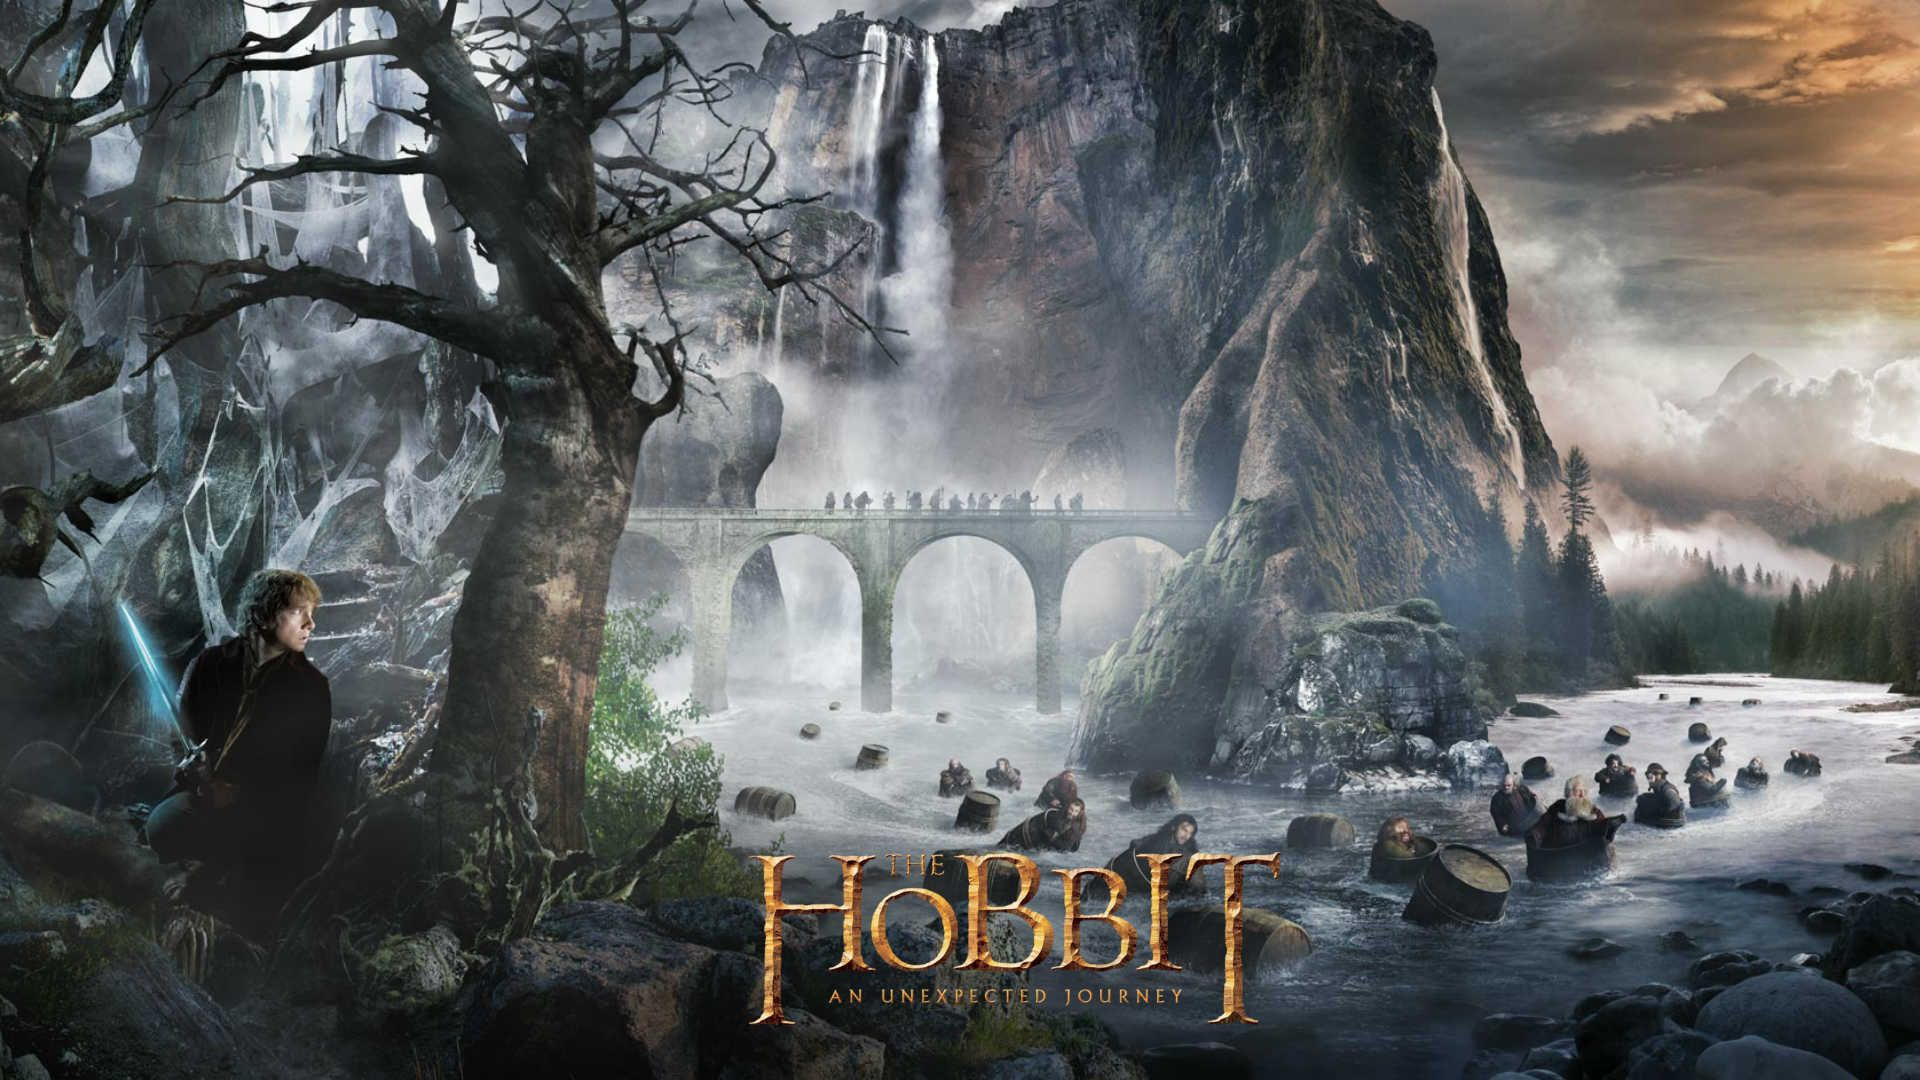 I Can T Wait That Scene With The Dwarves In The Water Hobbit Herr Der Ringe